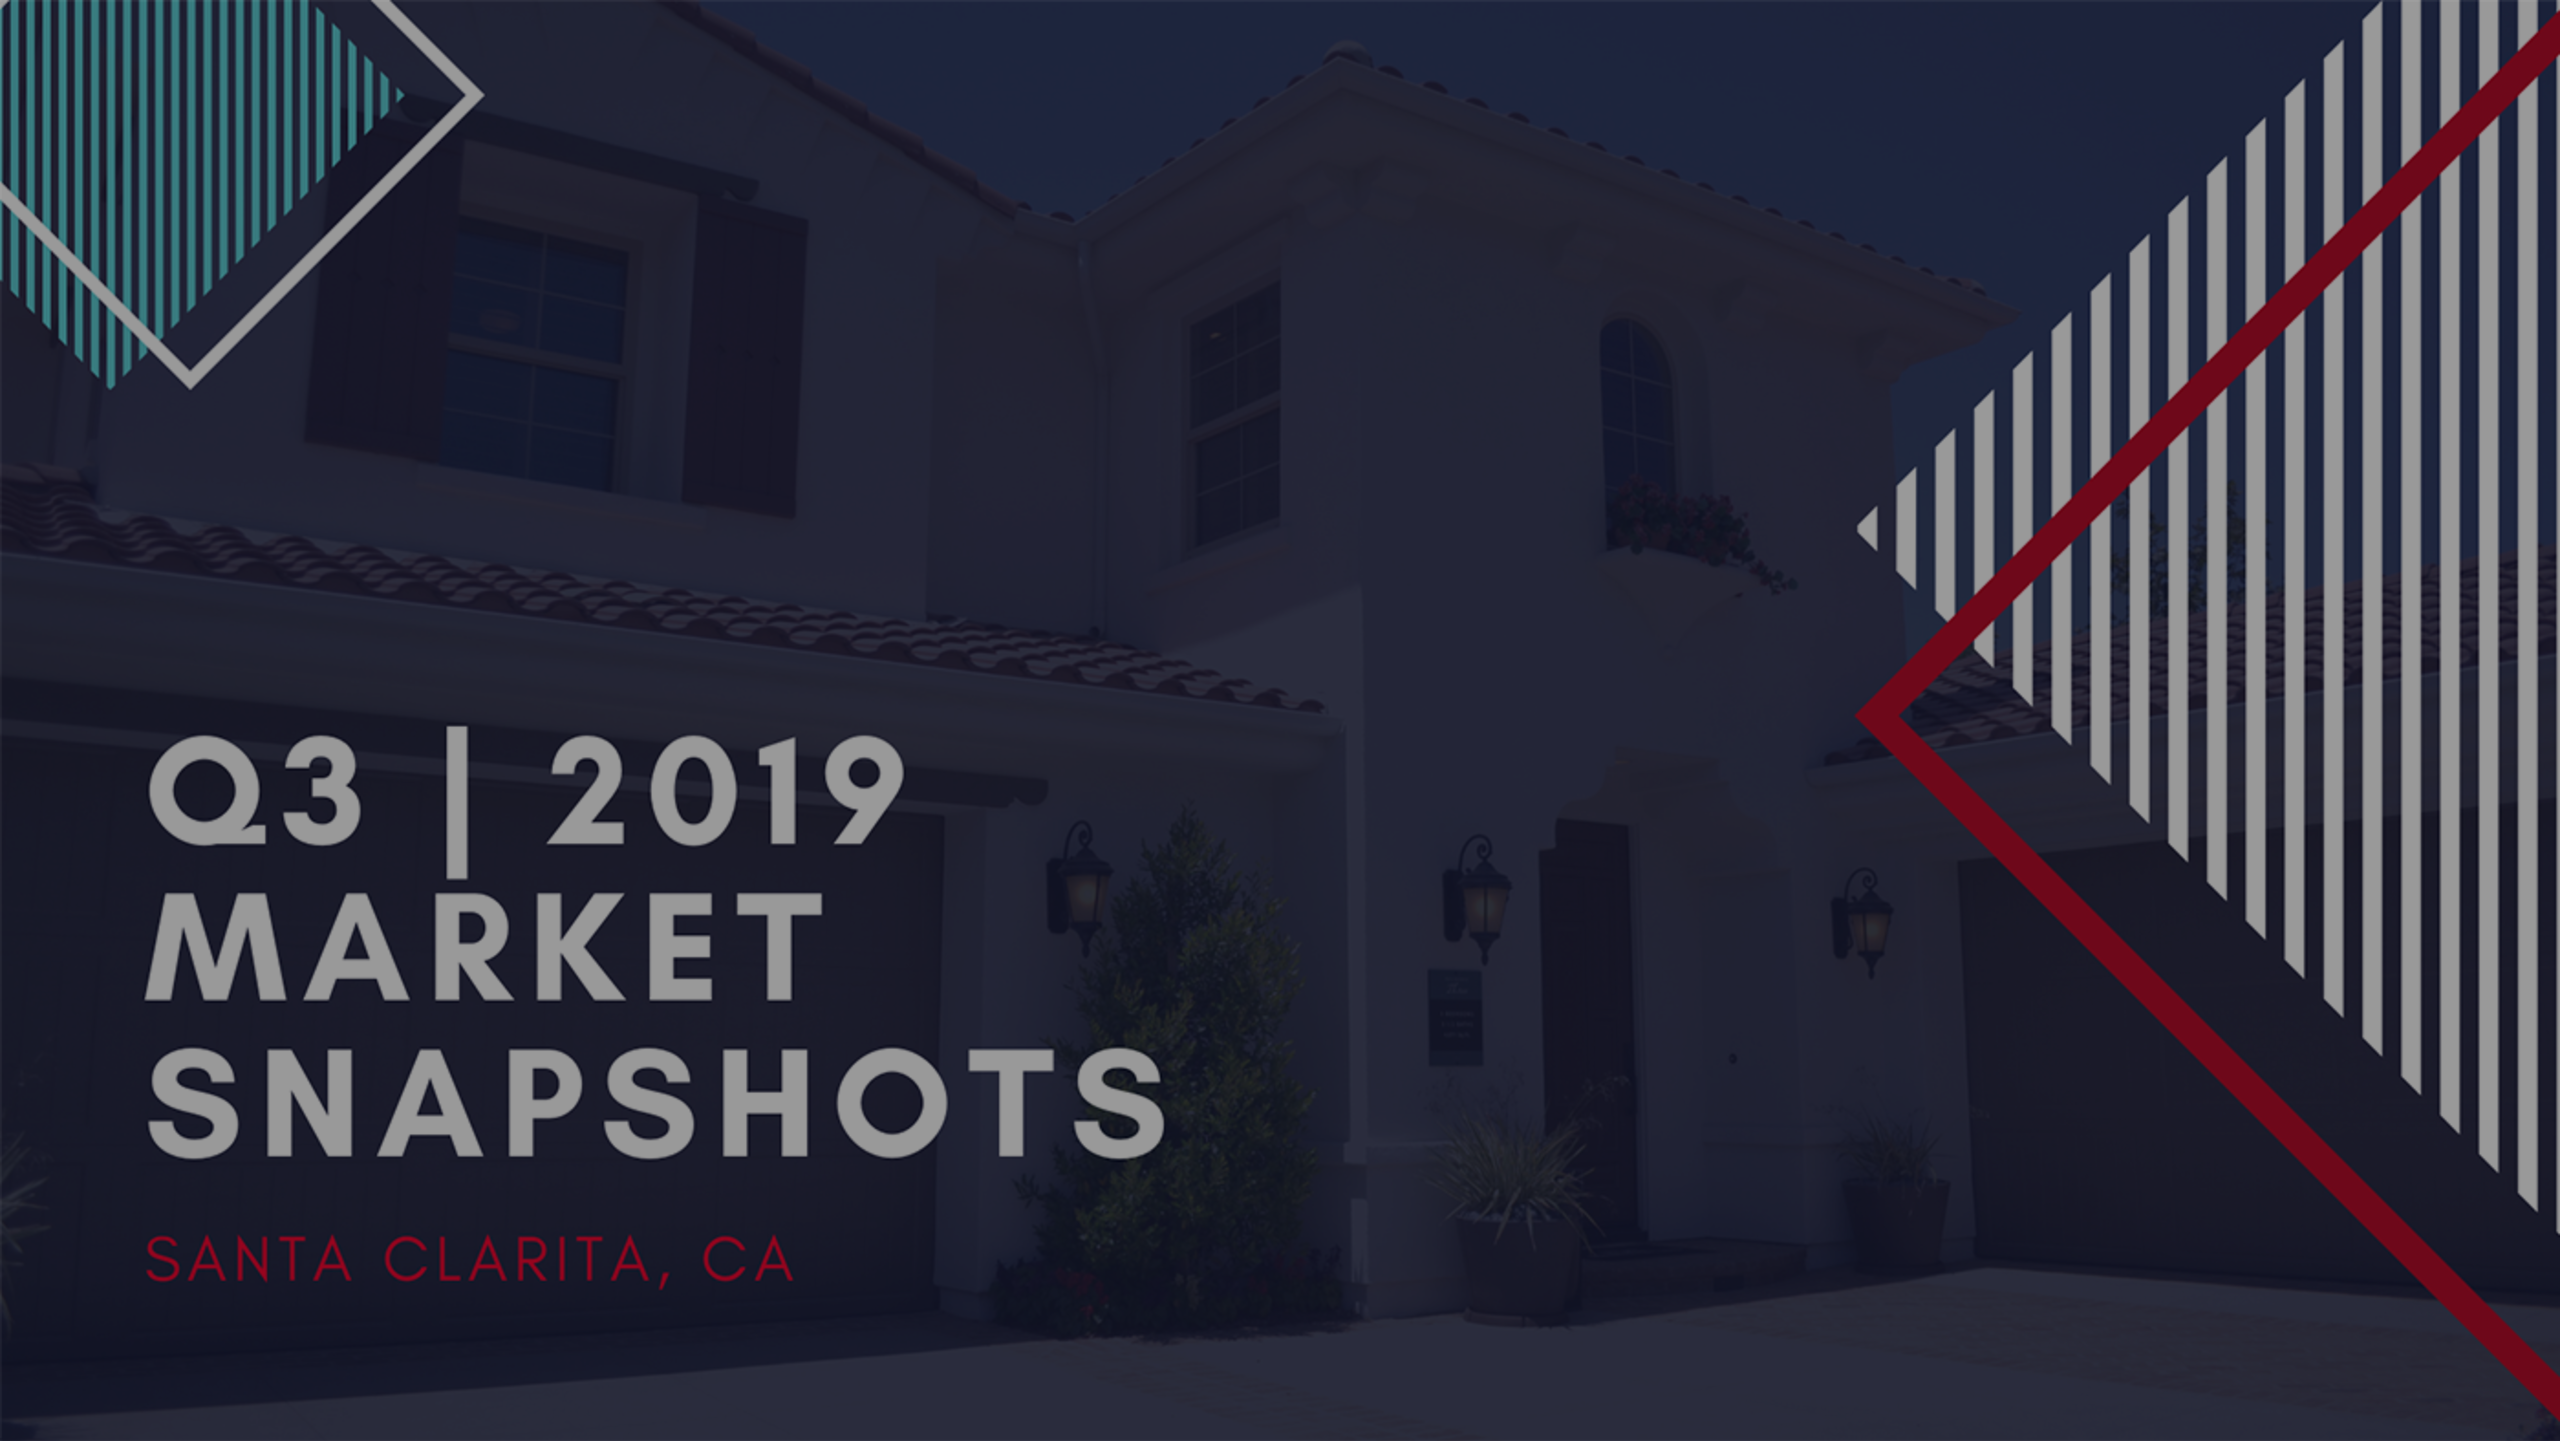 Q3 | 2019 -Real Estate Market Snapshots of Santa Clarita, Ca